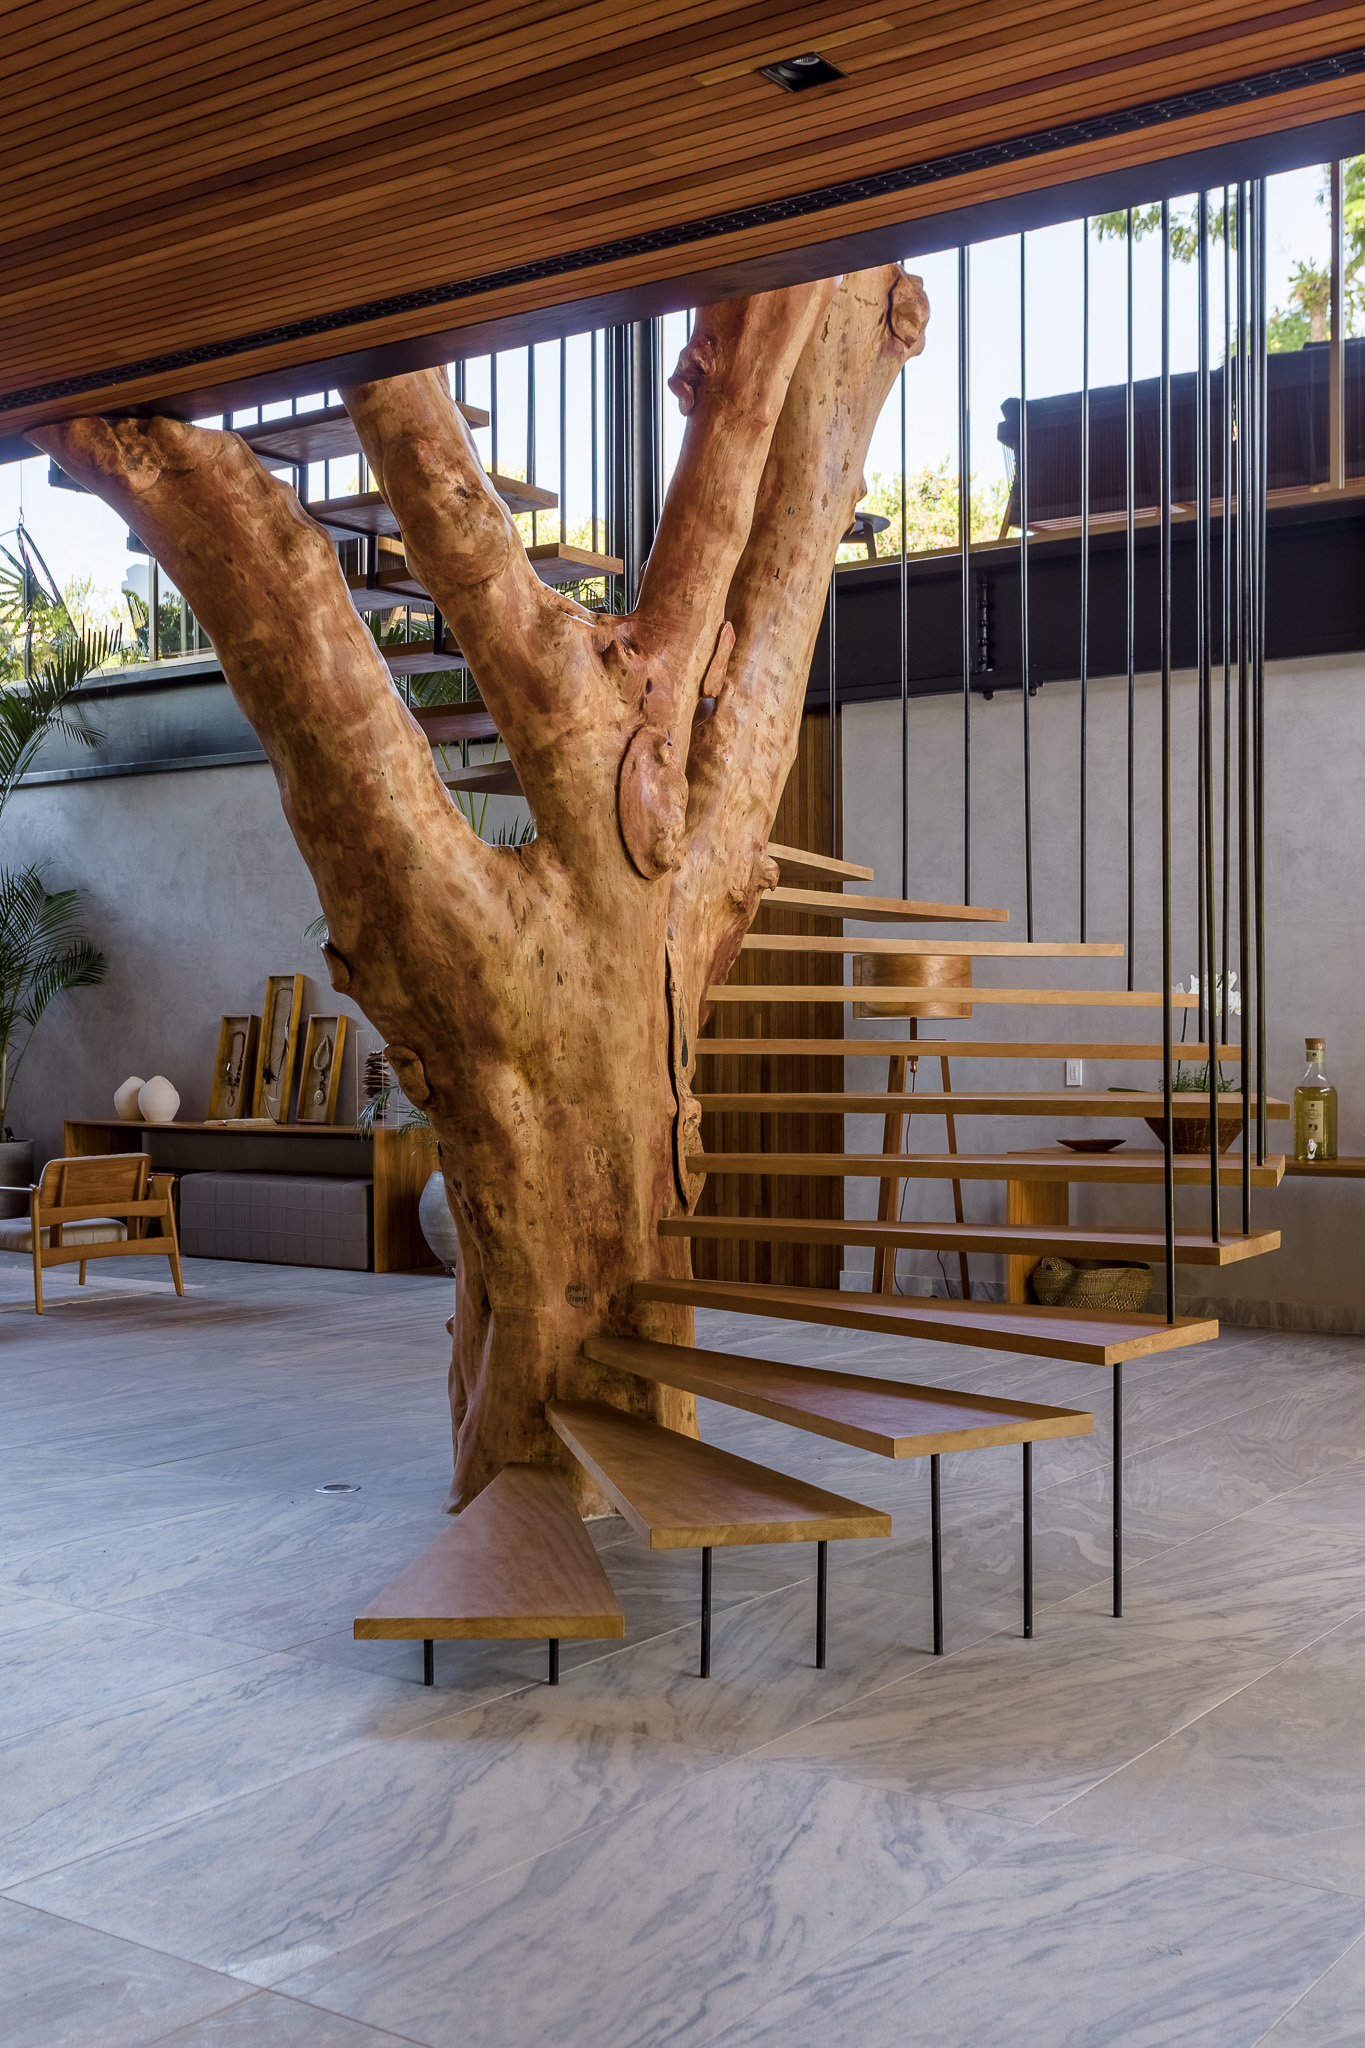 staircase with wooden steps around an old tree